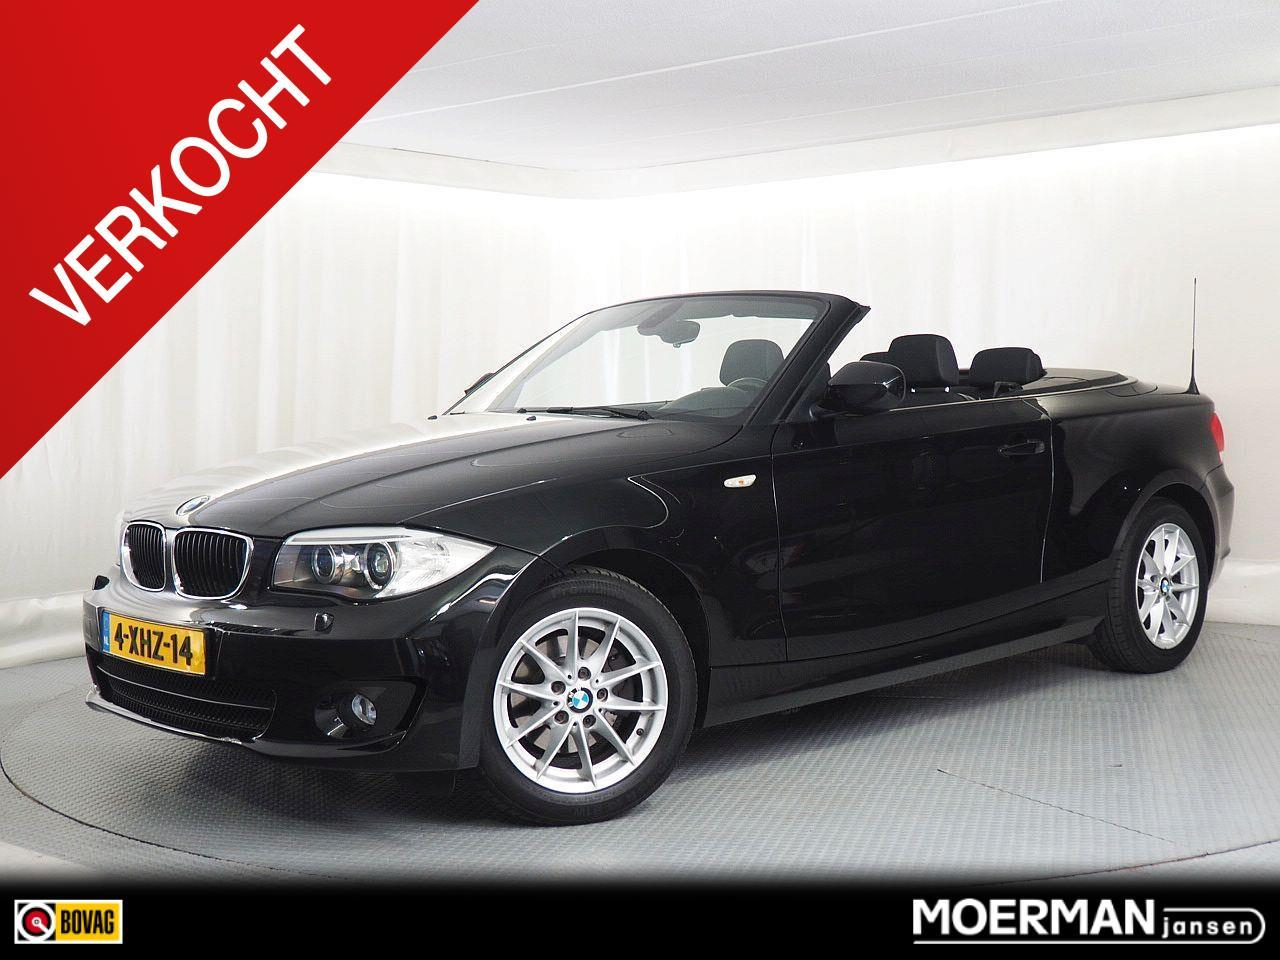 Bmw 1 serie Cabrio 118i exclusive edition verkocht